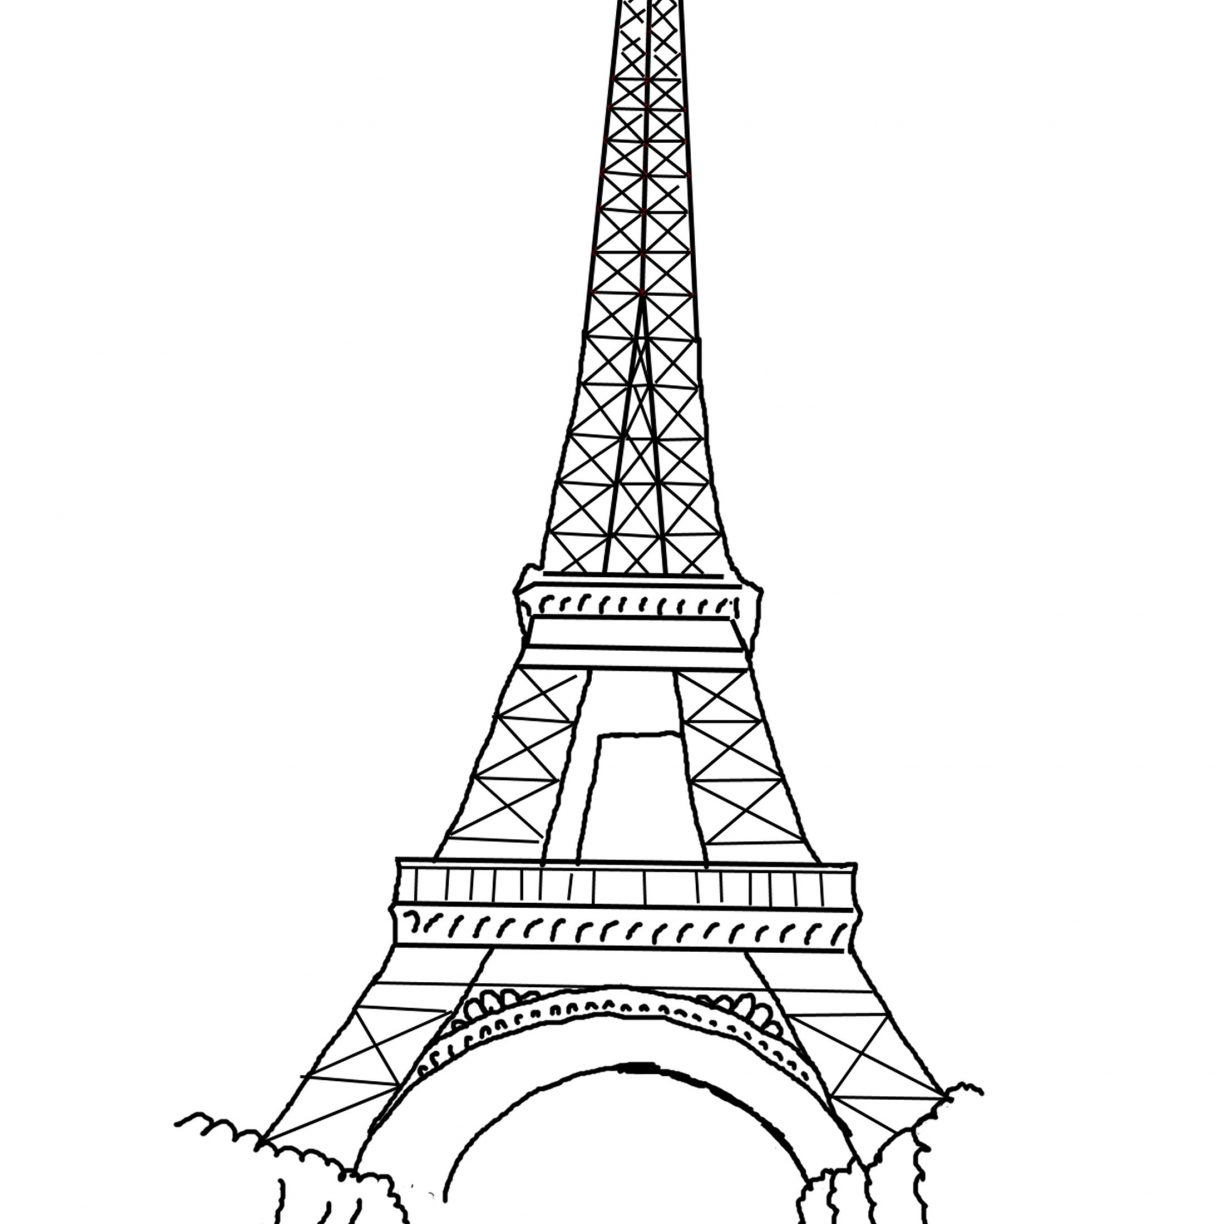 drawings of eiffel tower 40 most beautiful and detailed eiffel tower drawings eiffel of tower drawings